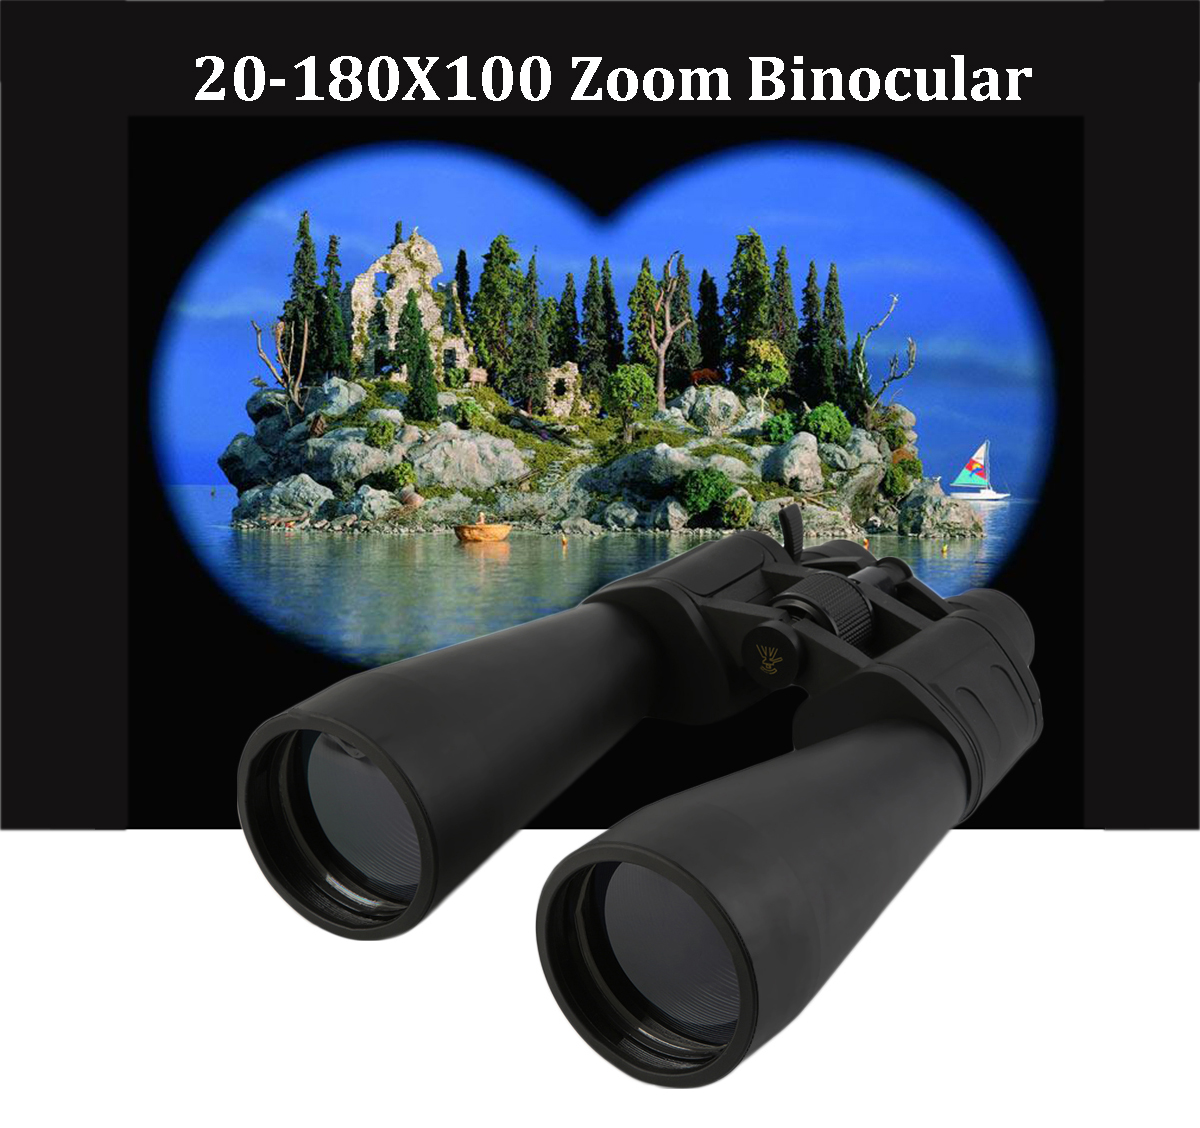 IPRee® 20-180x100 HD Super Zoom Binocular BAK4 FMC Coated Low Light Level Night Vision Telescope